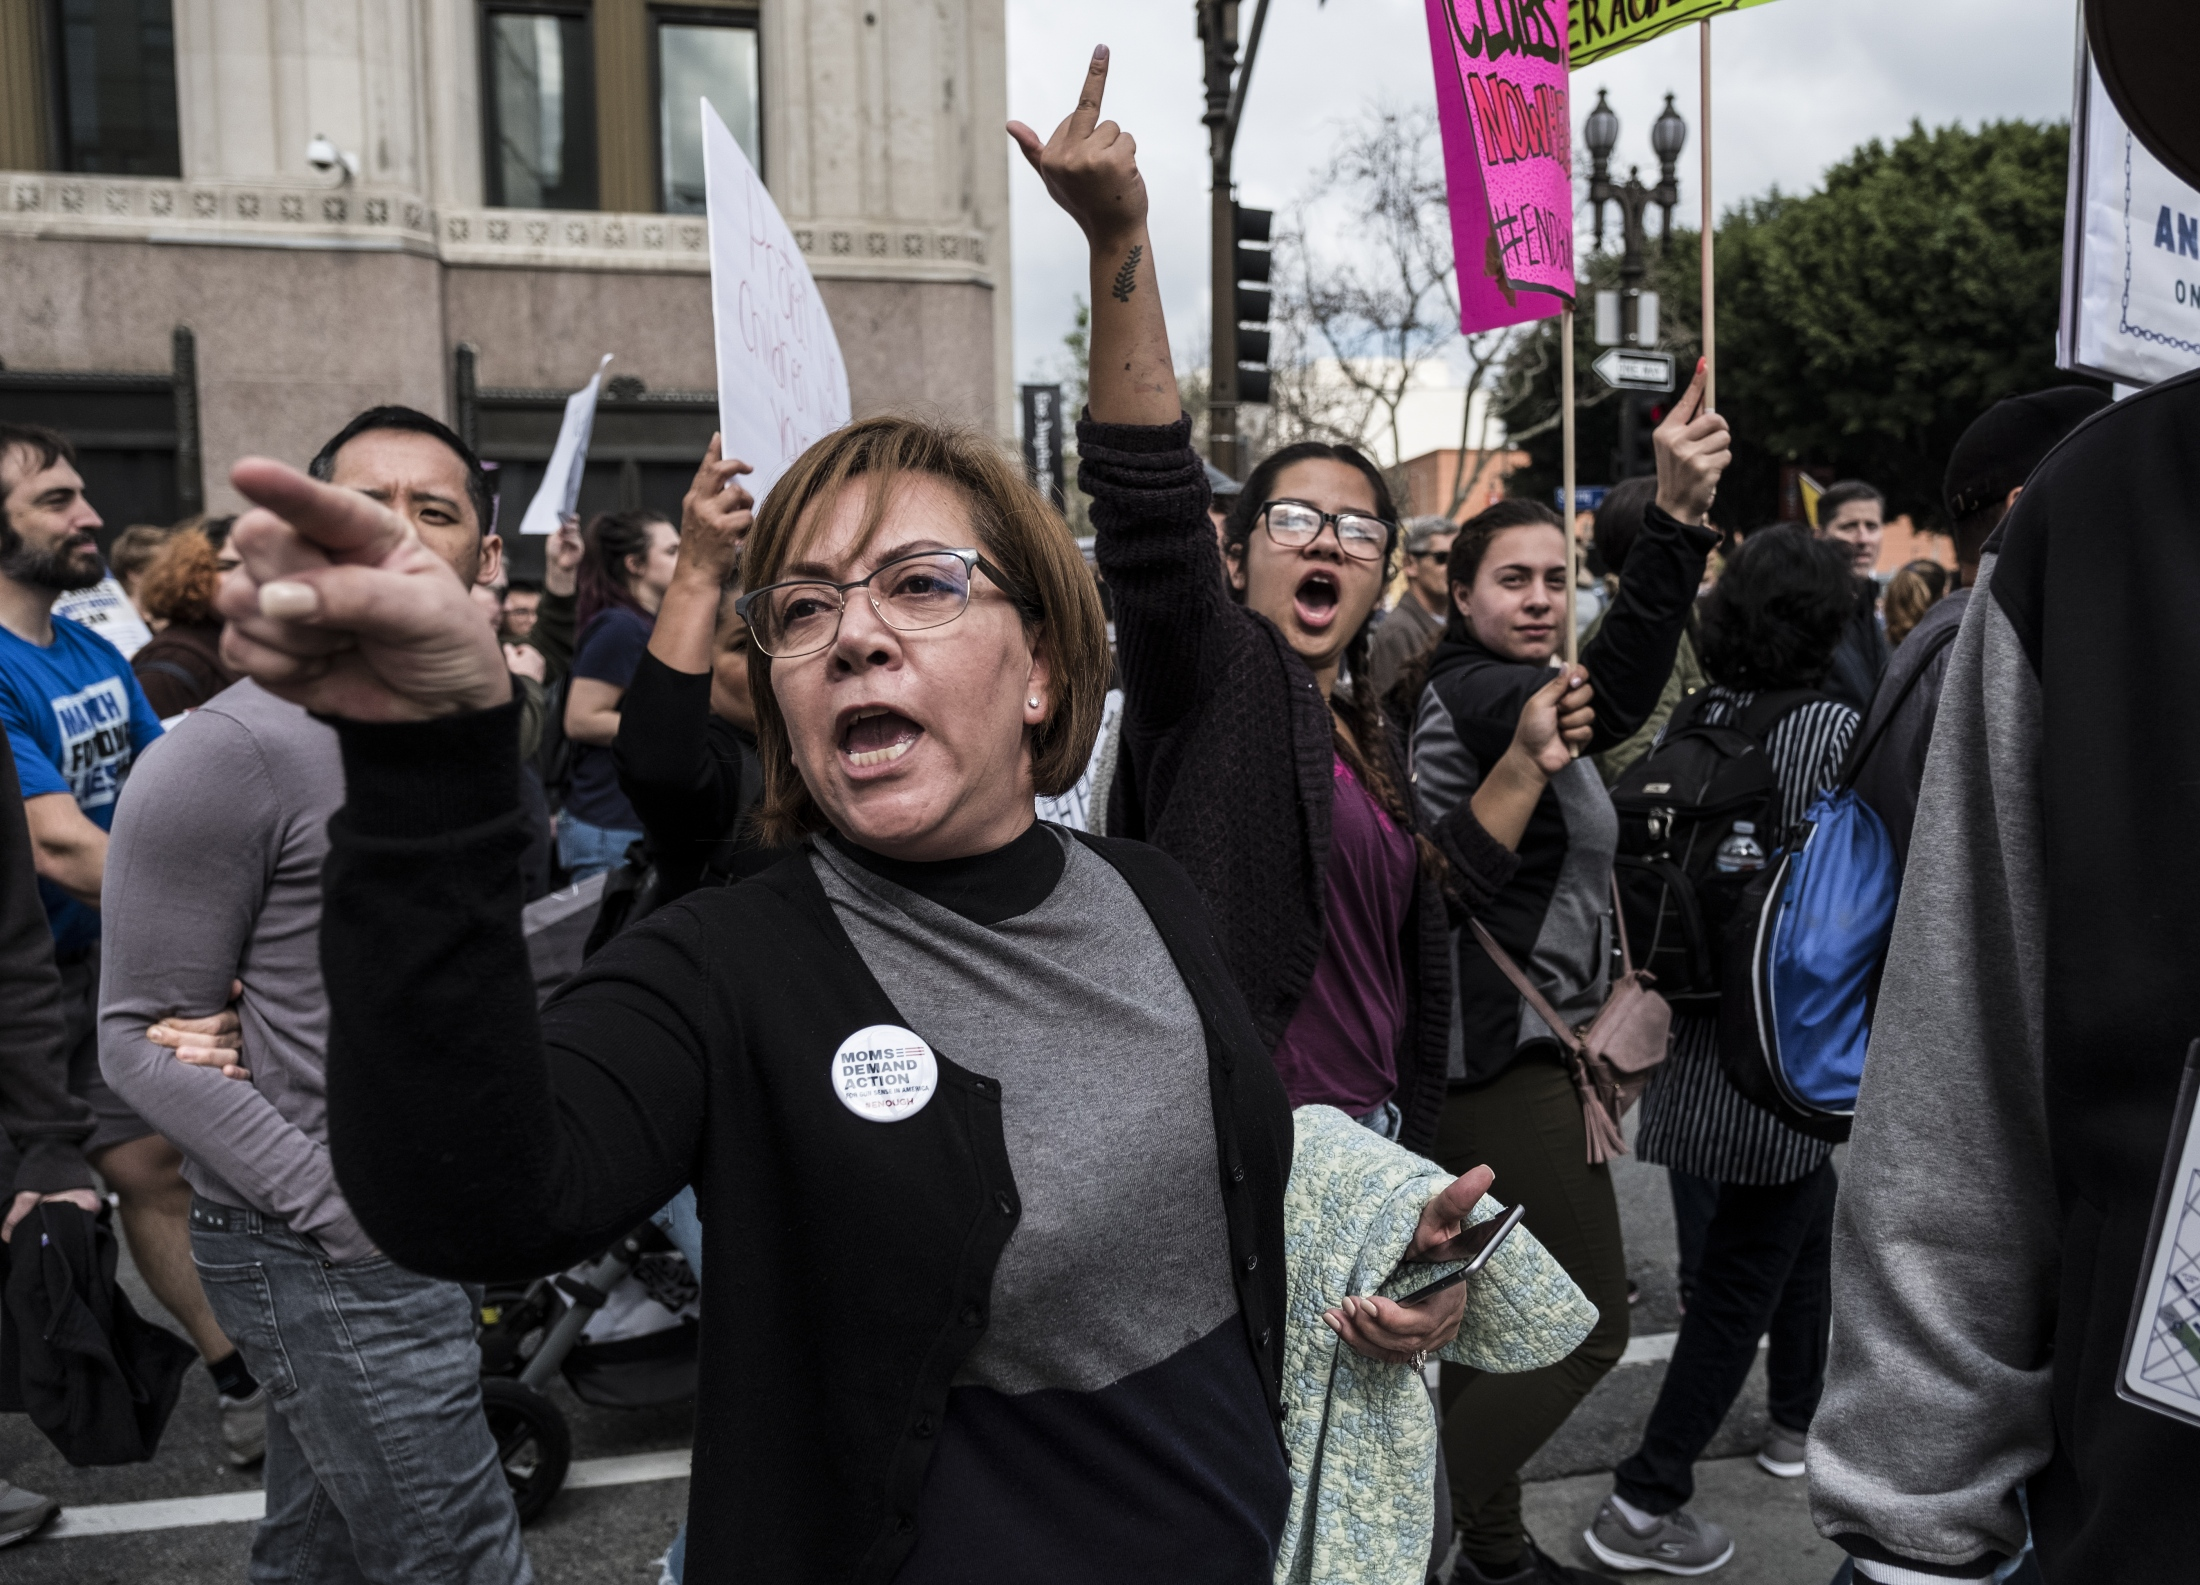 Activists react to a small group of pro-gun counter protesters during the March for Our Lives Los Angeles rally on March 24, 2018 in Los Angeles, California. More than 800 March for Our Lives events, organized by survivors of the Parkland, Florida school shooting on February 14 that left 17 dead, are taking place around the world to call for legislative action to address school safety and gun violence.